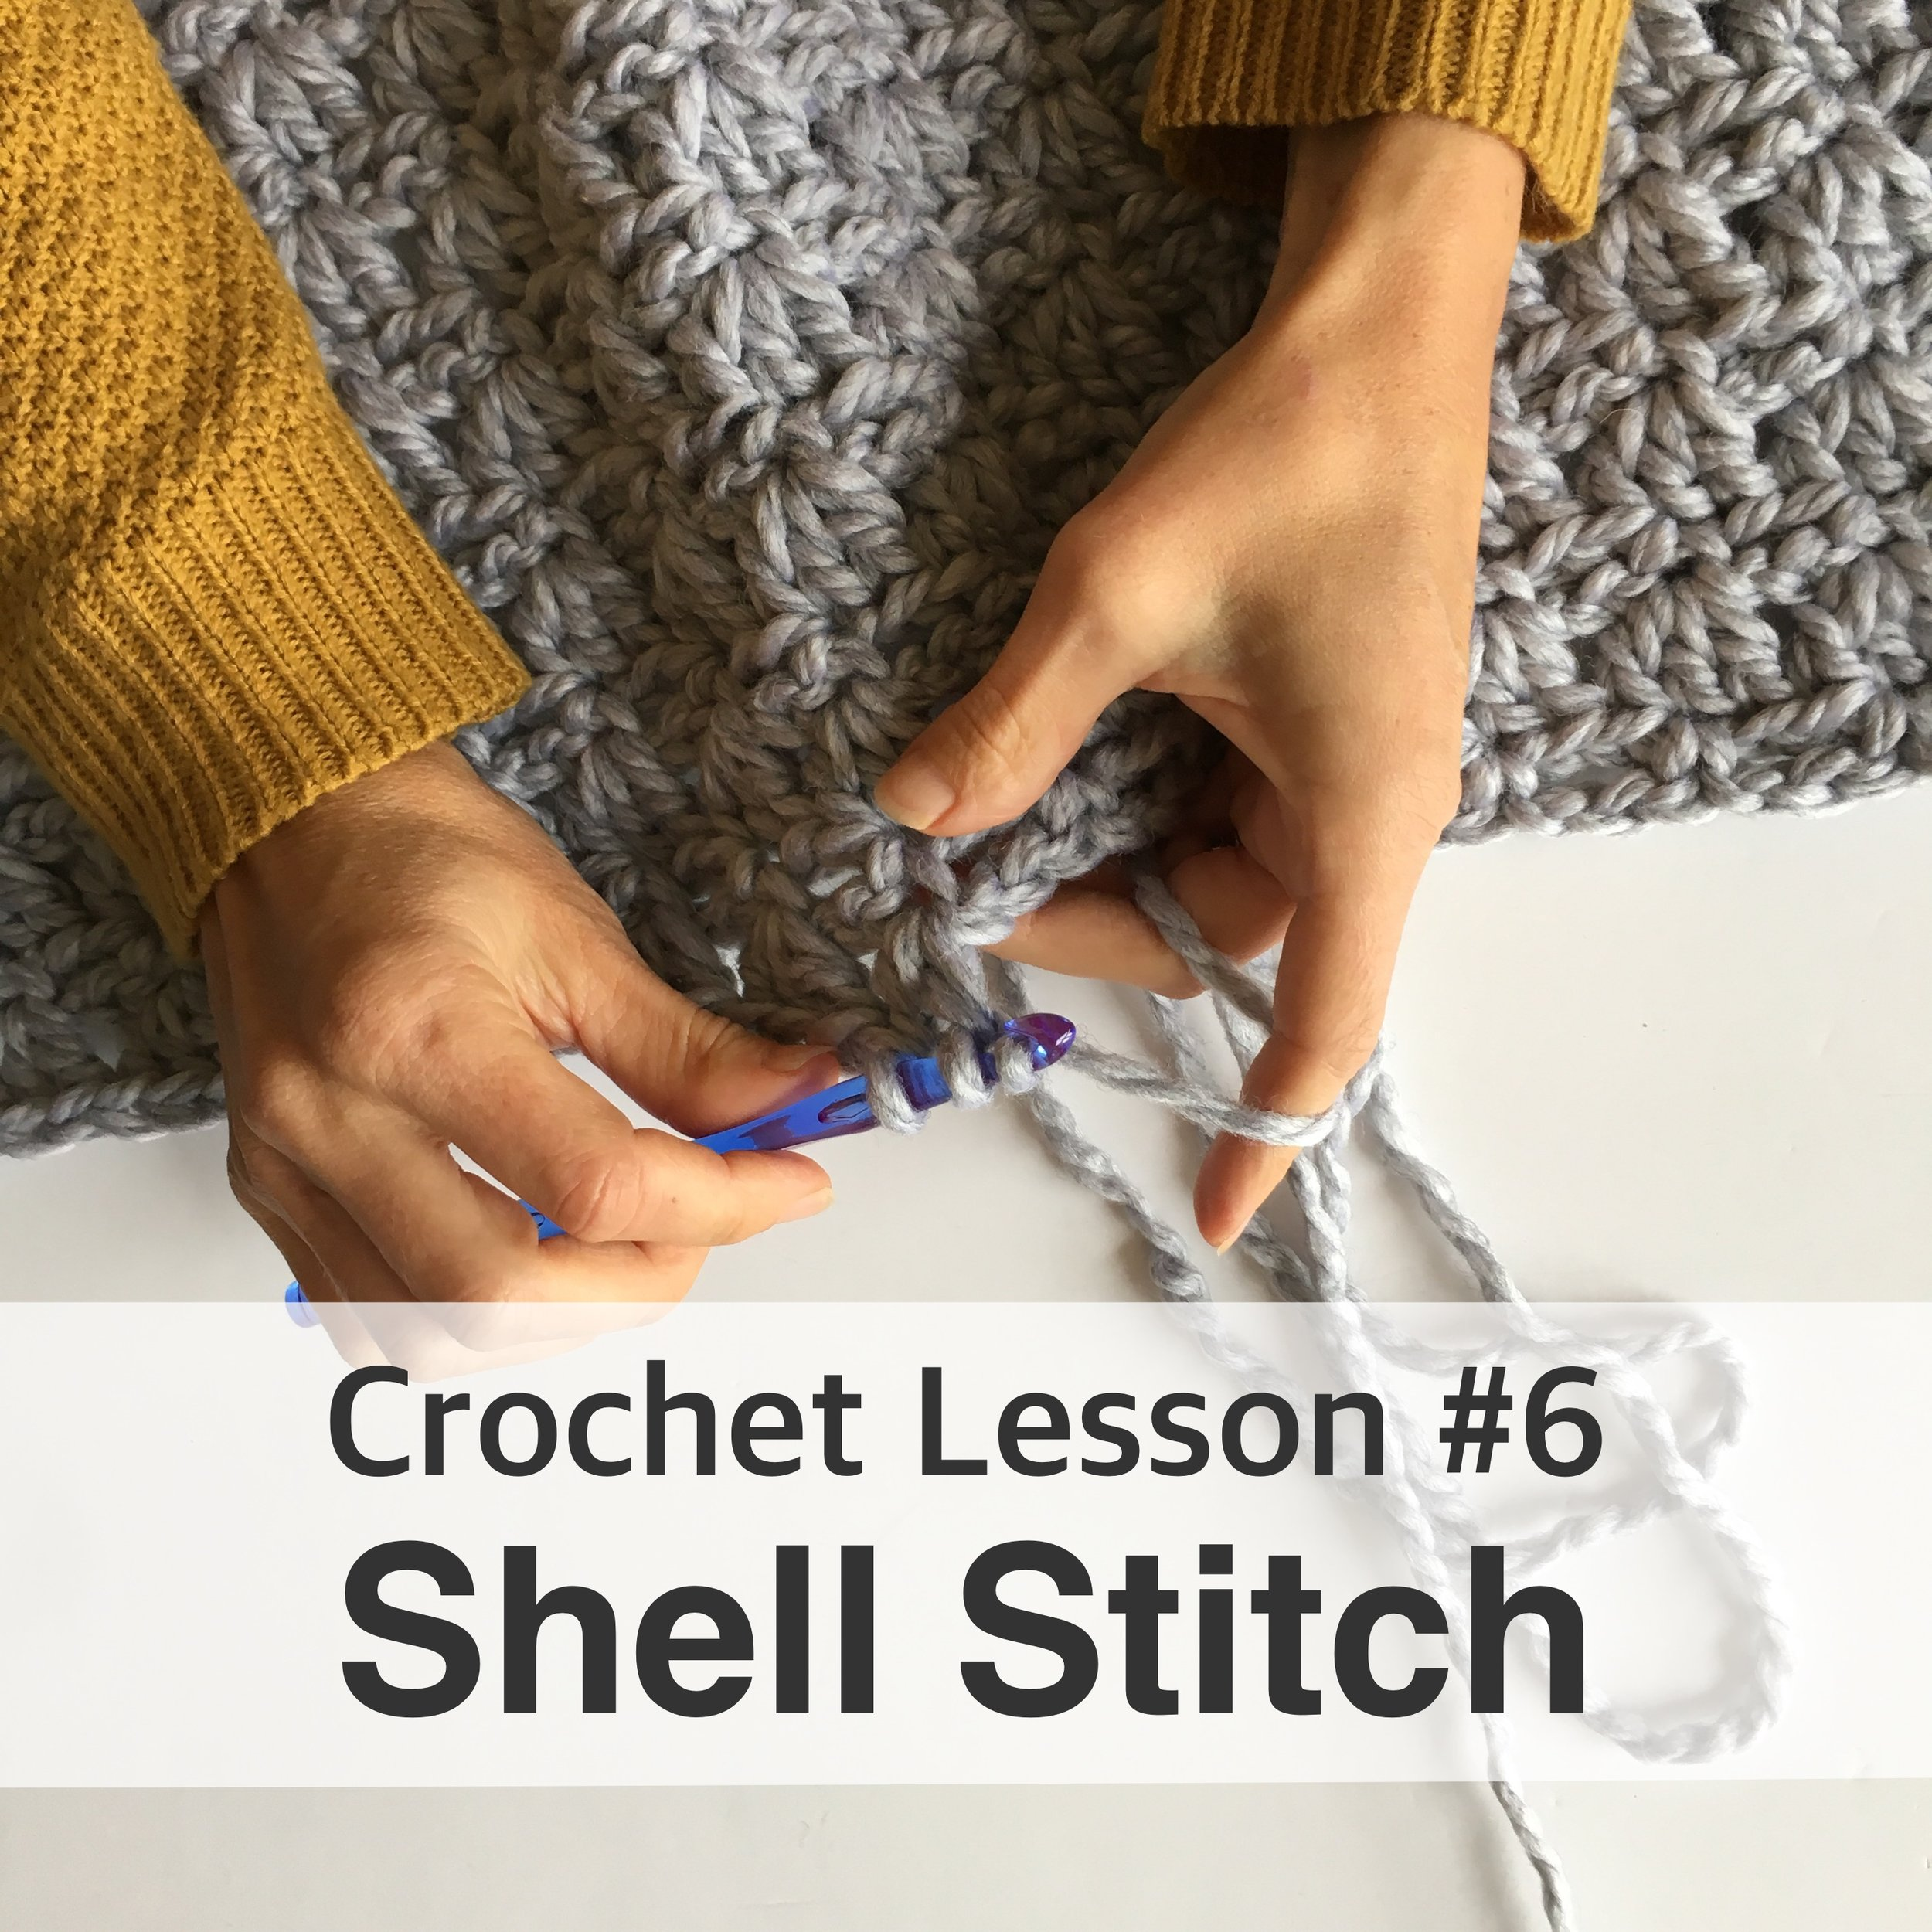 How to crochet a shell stitch. Blue Corduroy Crochet Lessons.